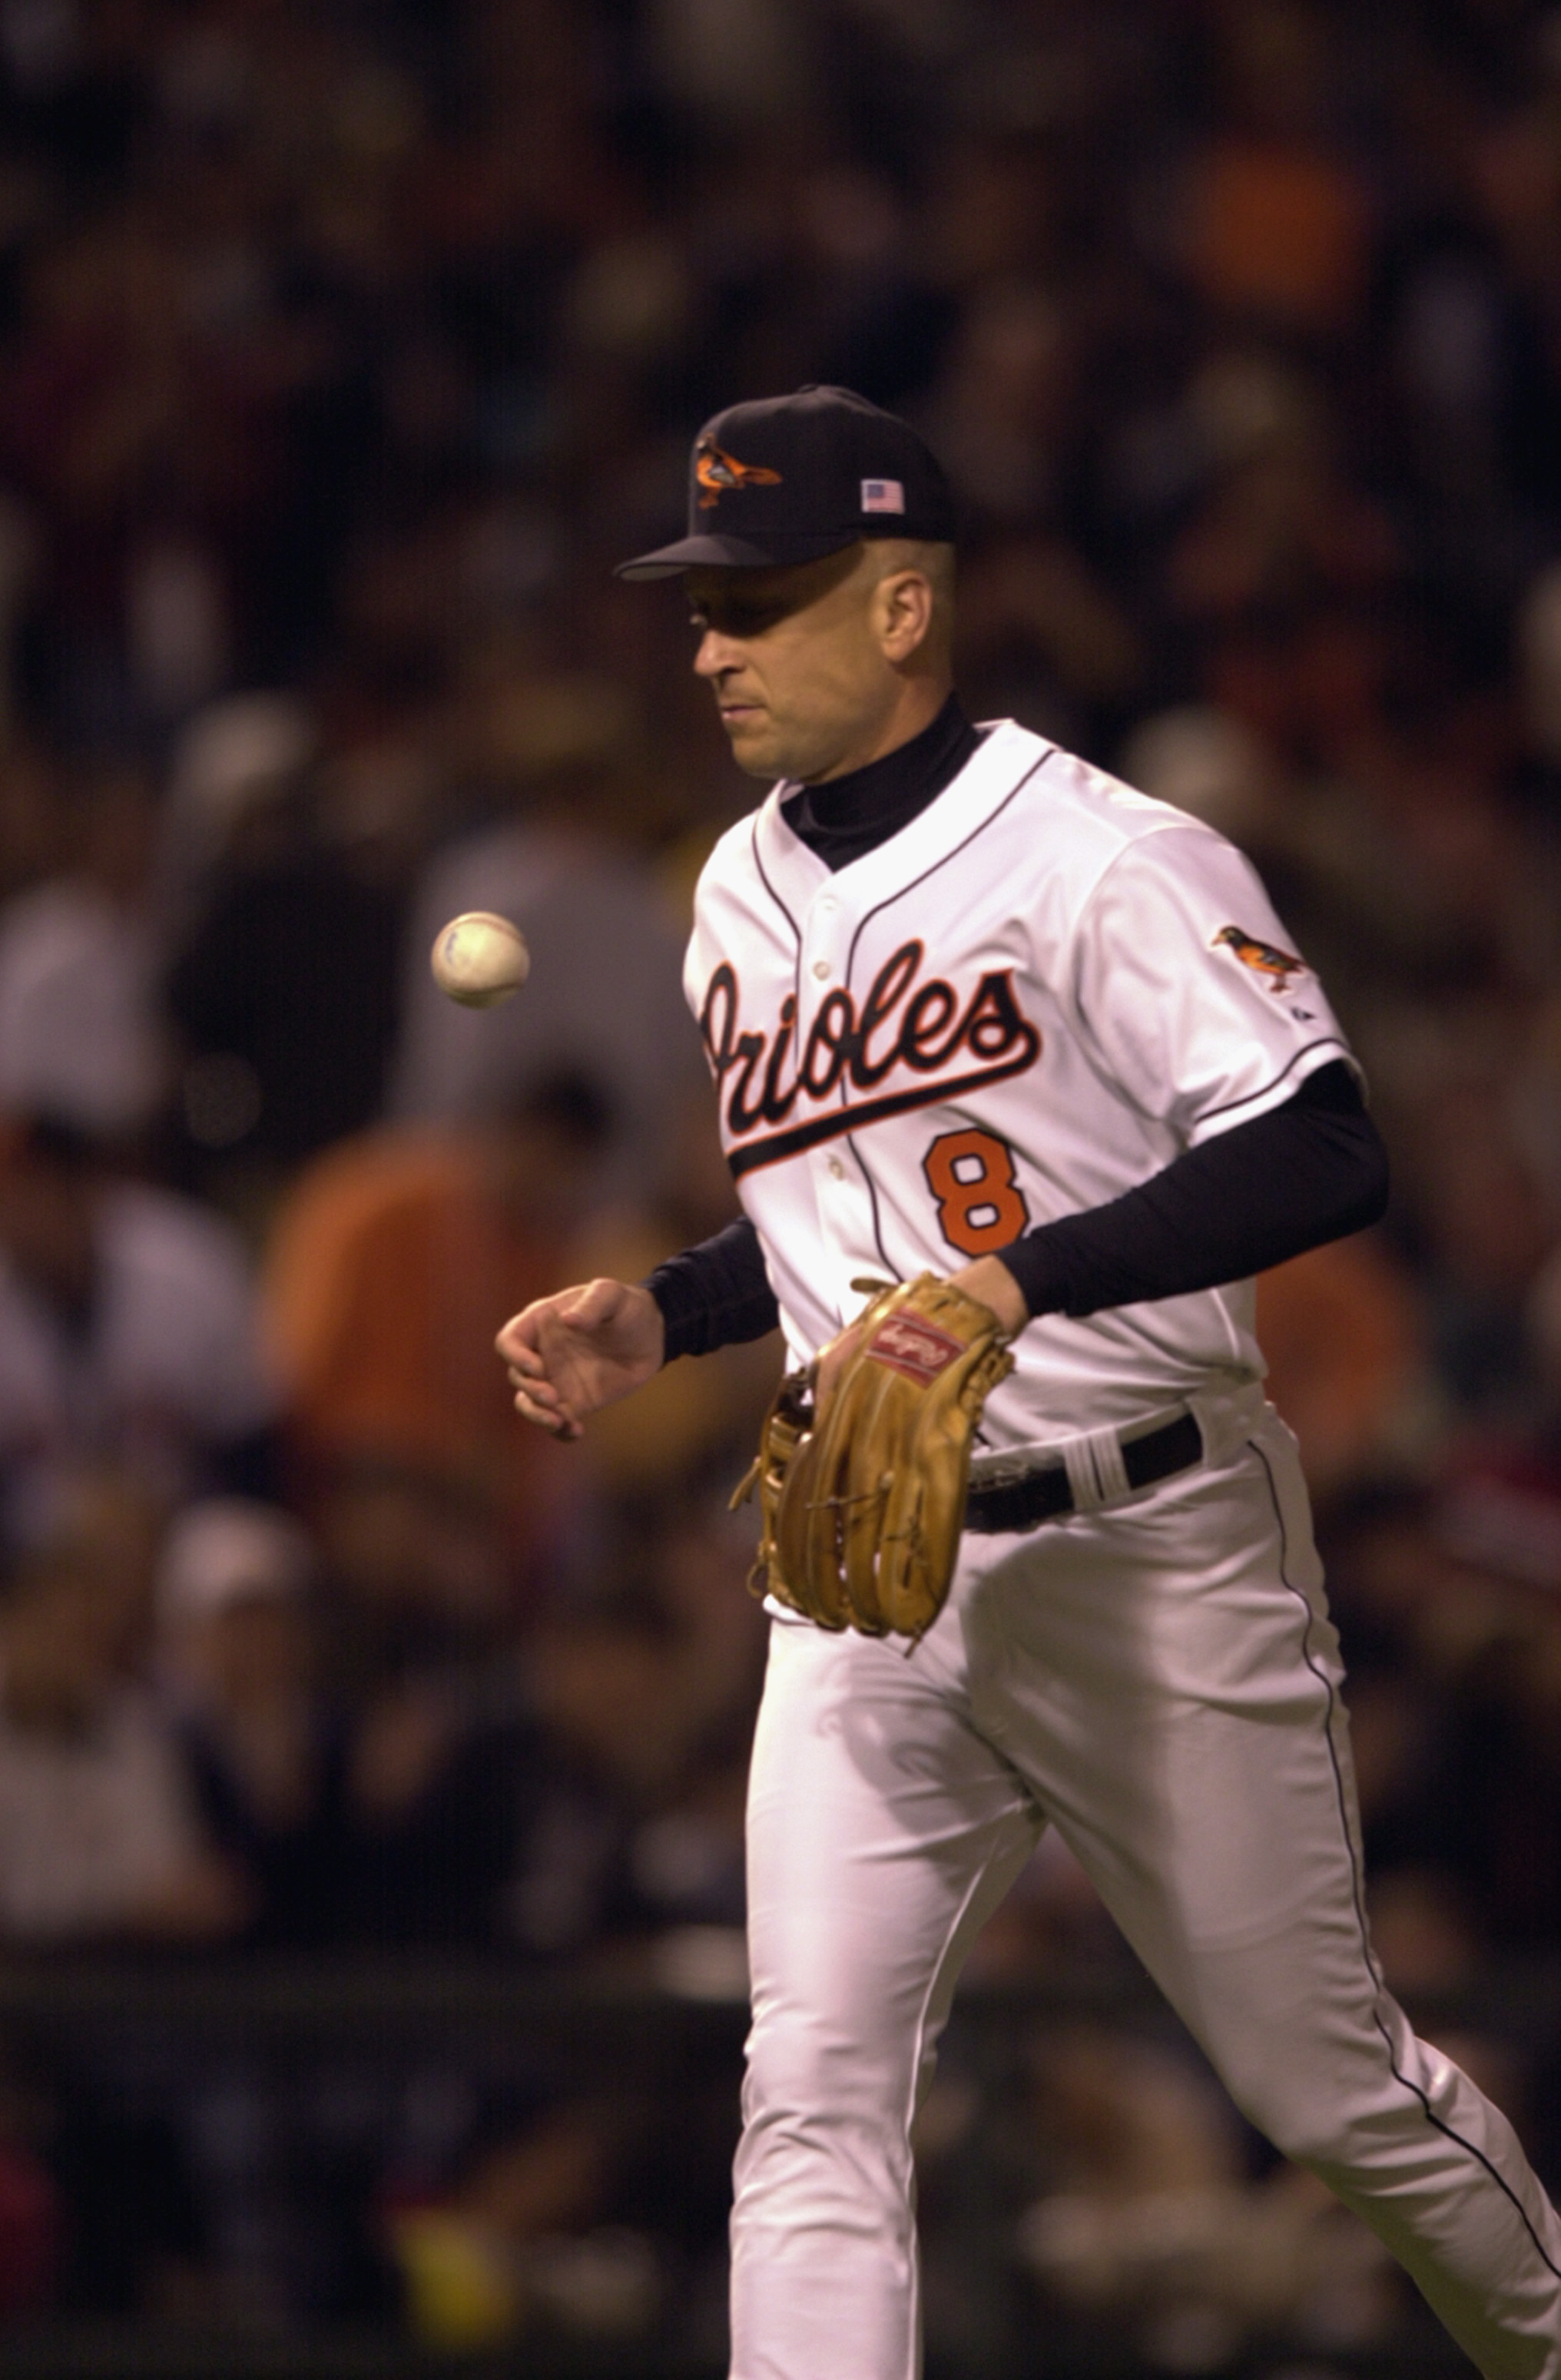 BALTIMORE - OCTOBER 6:  On the 3001st and final game of his career, Cal Ripken Jr. #8 of the Baltimore Orioles retires to the dugout so the Boston Red Sox can take the field at Camden Yards in Baltimore, Maryland. The Red Sox won, 2-0.  (Photo by: Doug Pe